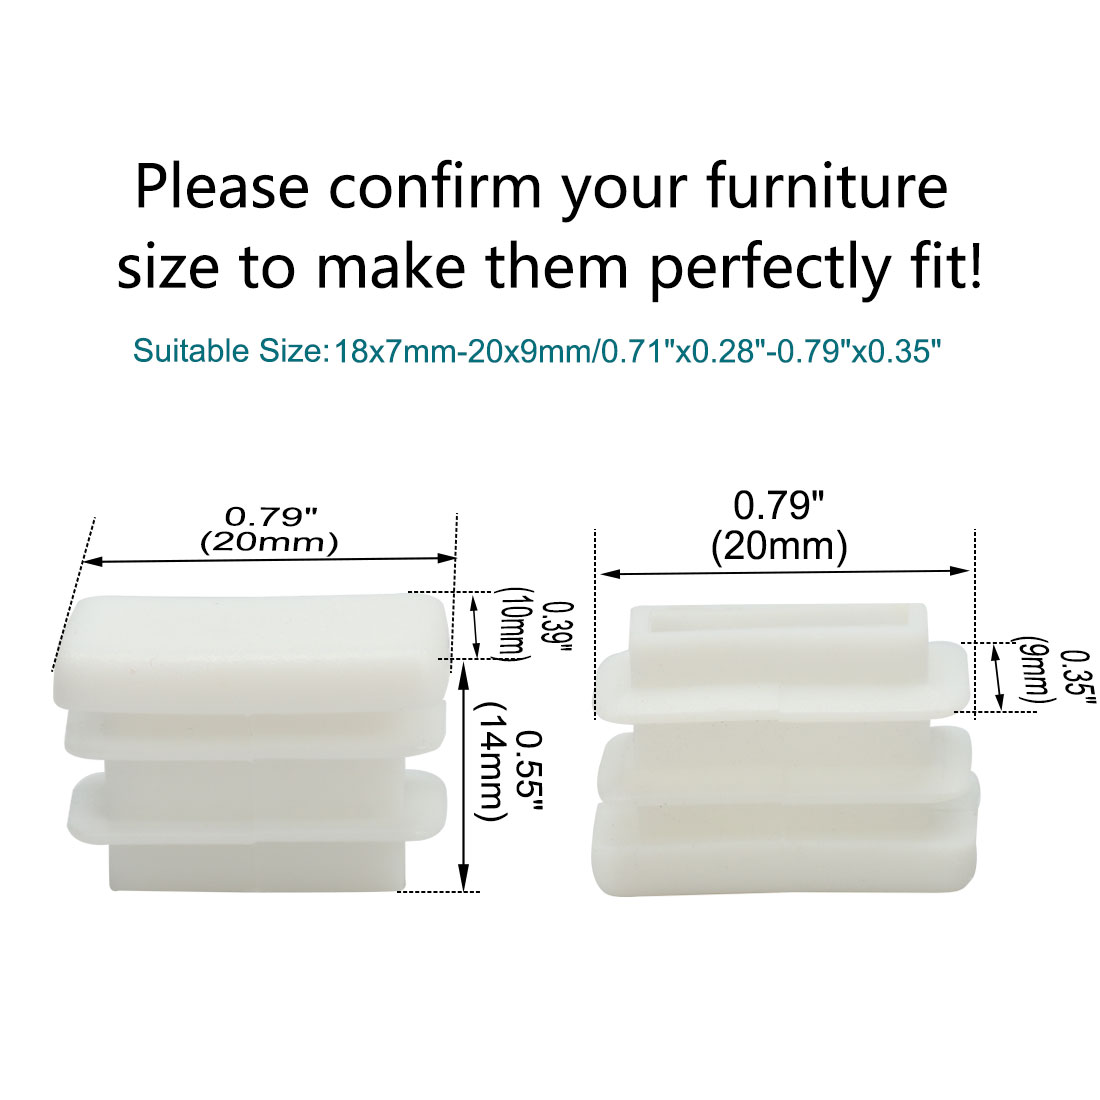 20 x 10mm Rectangle Tube Inserts Feet Caps Furniture Legs Floor Protector 150pcs - image 2 of 7